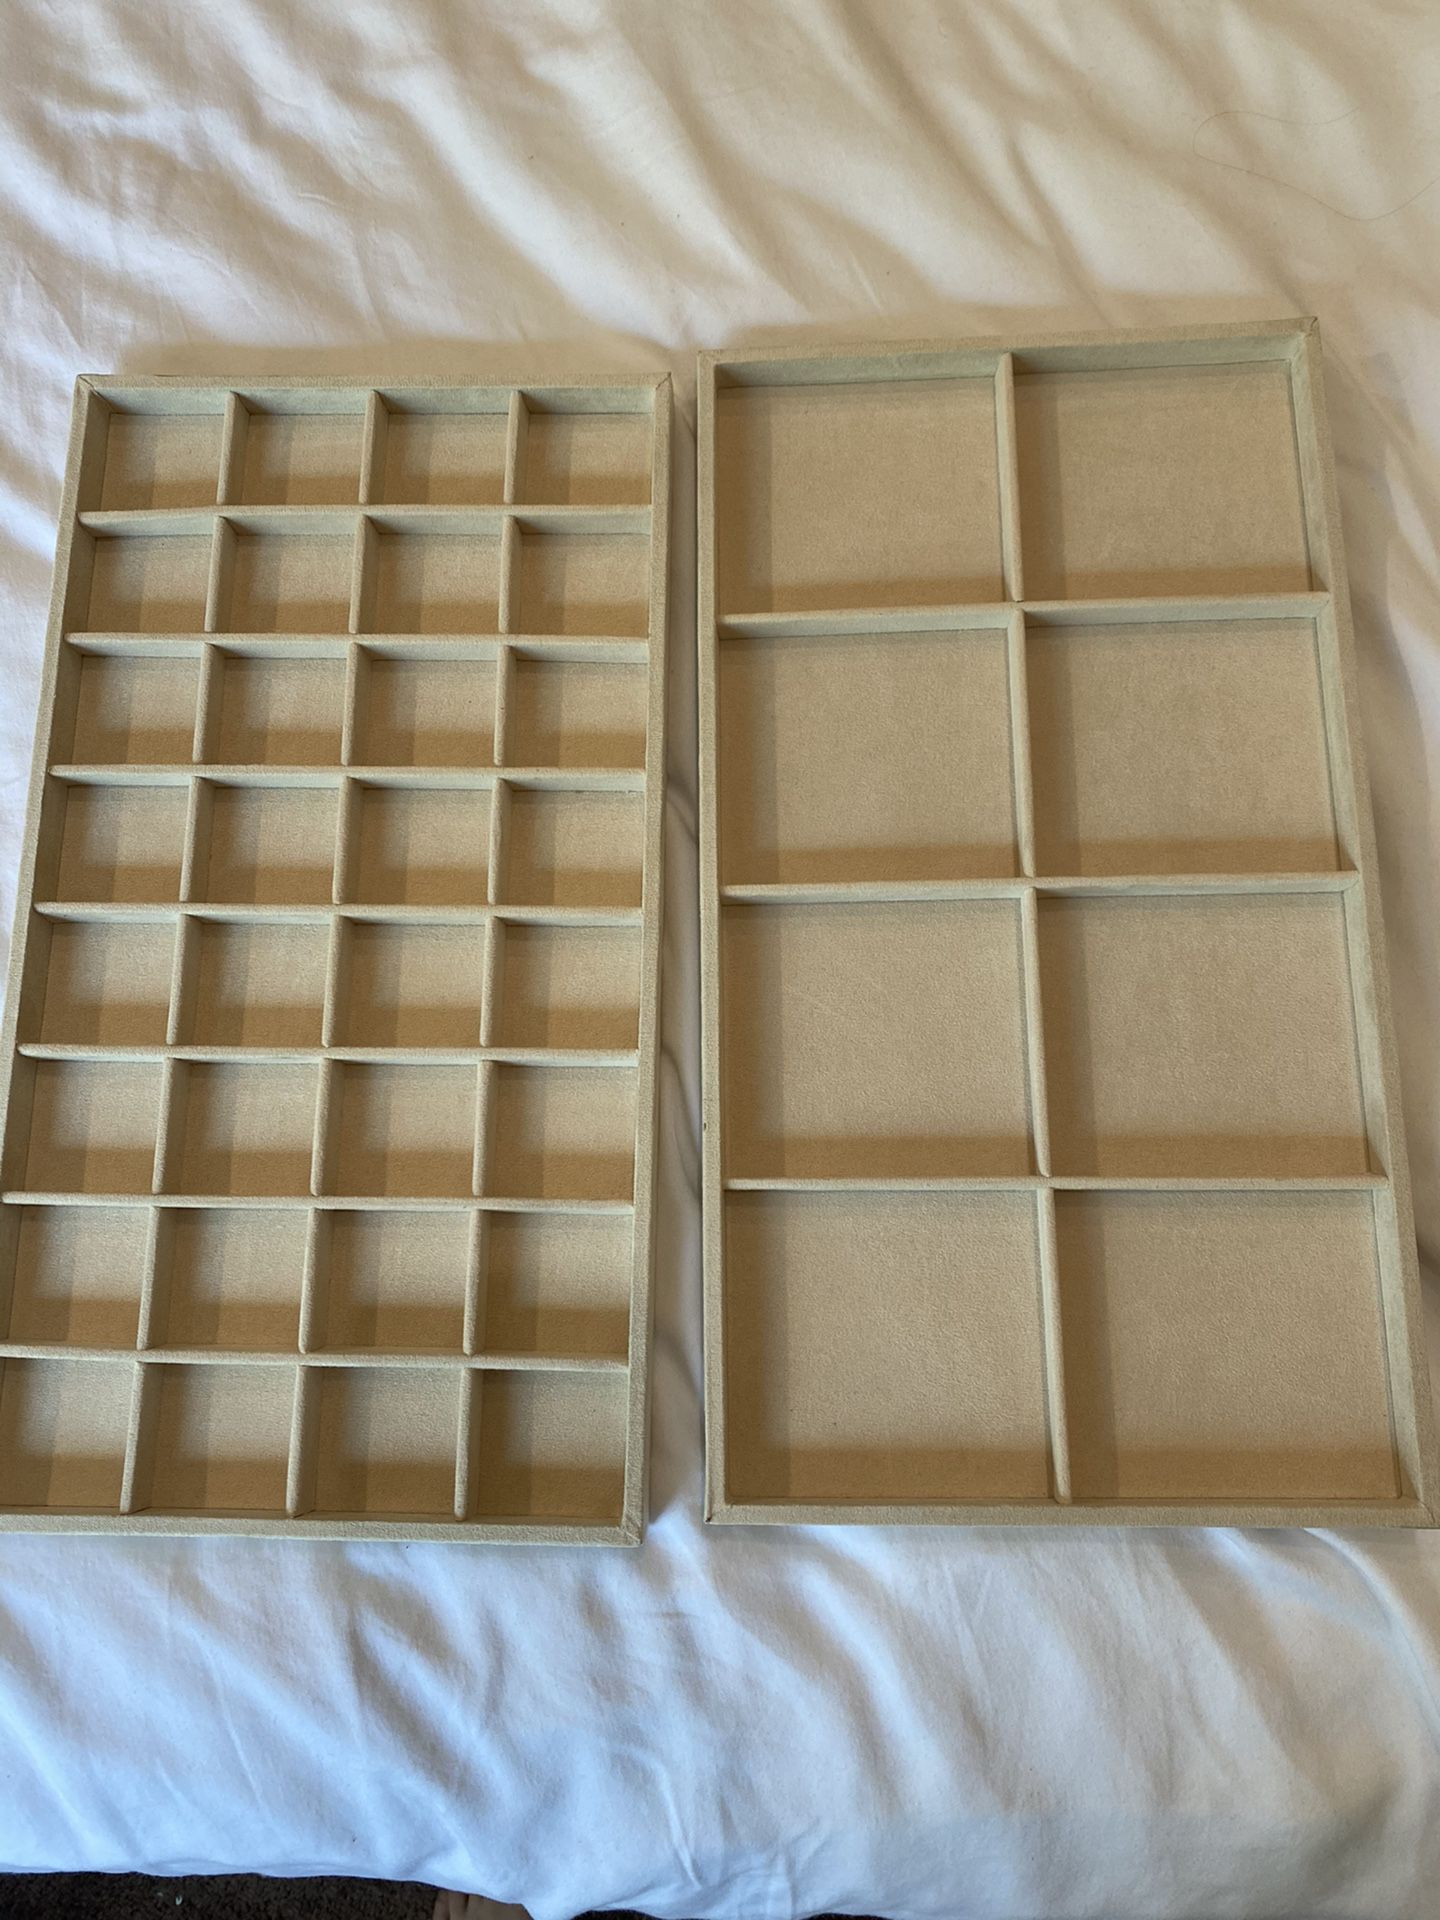 Now Available - Used Data tape Storage Racks and Shelving